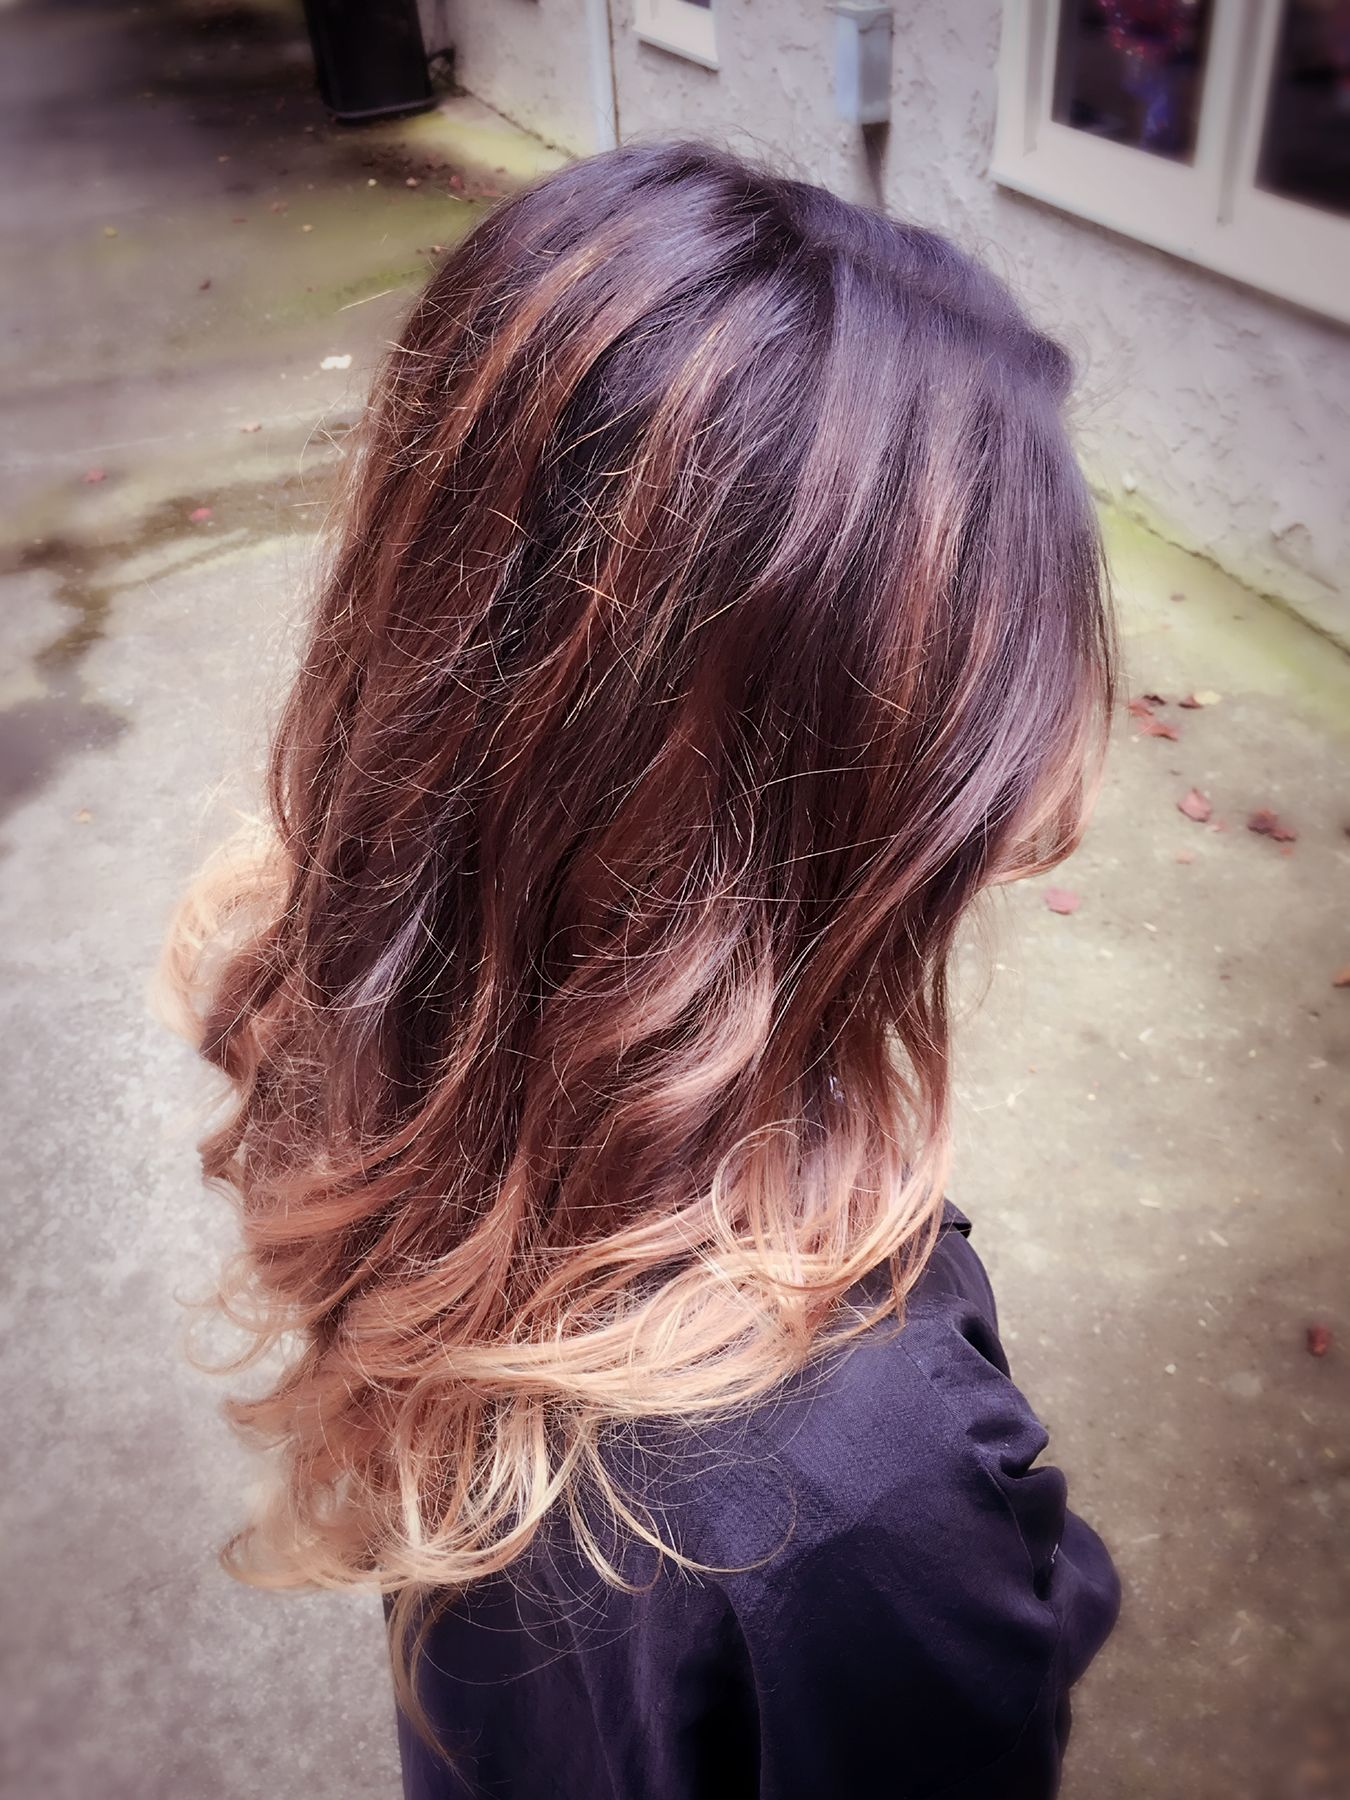 Balayage Ombr Color By Amber Mutter At Kellipaul Salon In Peachtree